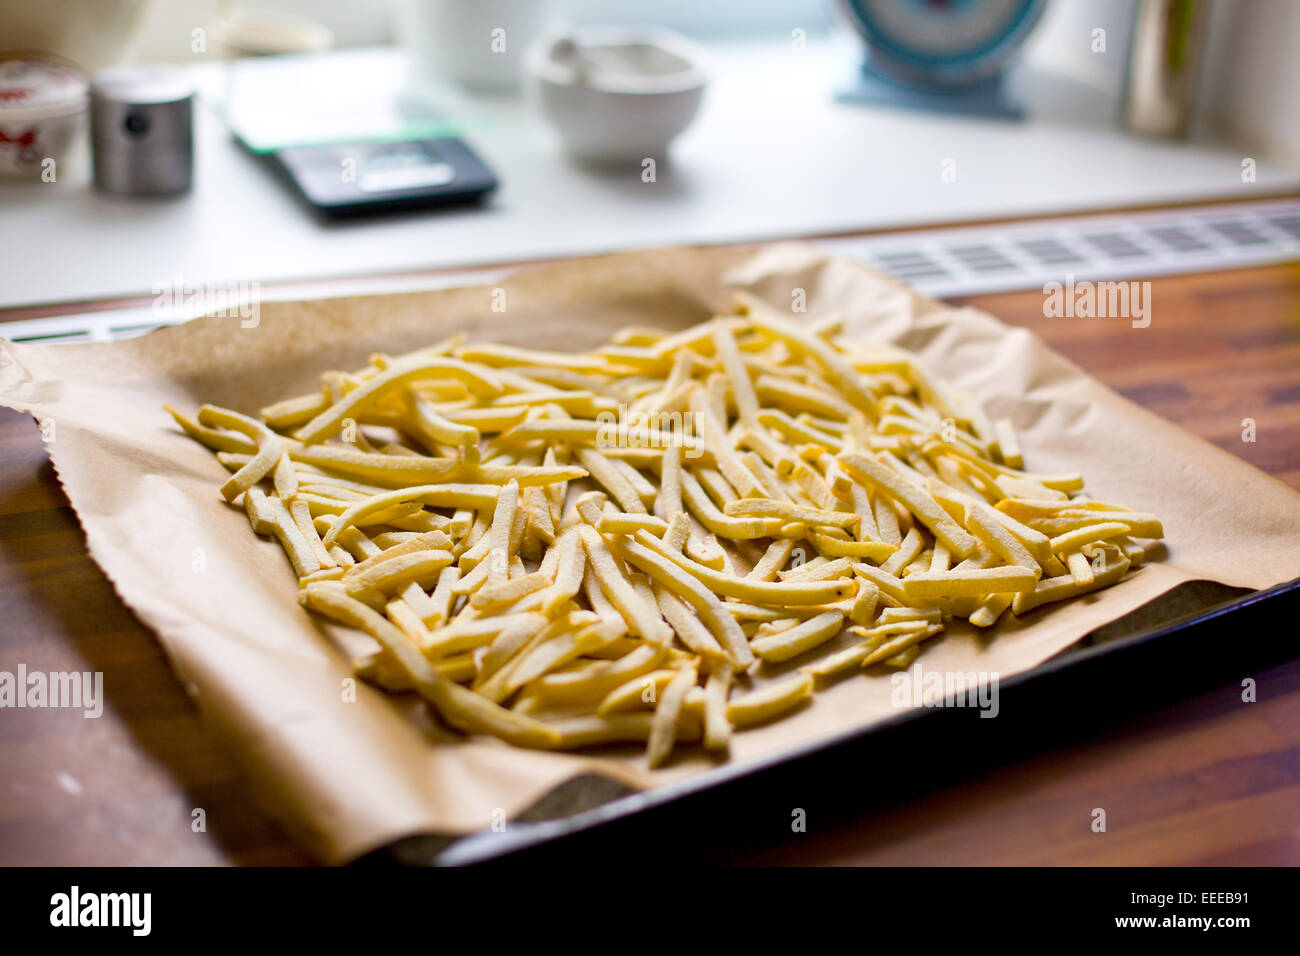 the french fries on roaster - Stock Image